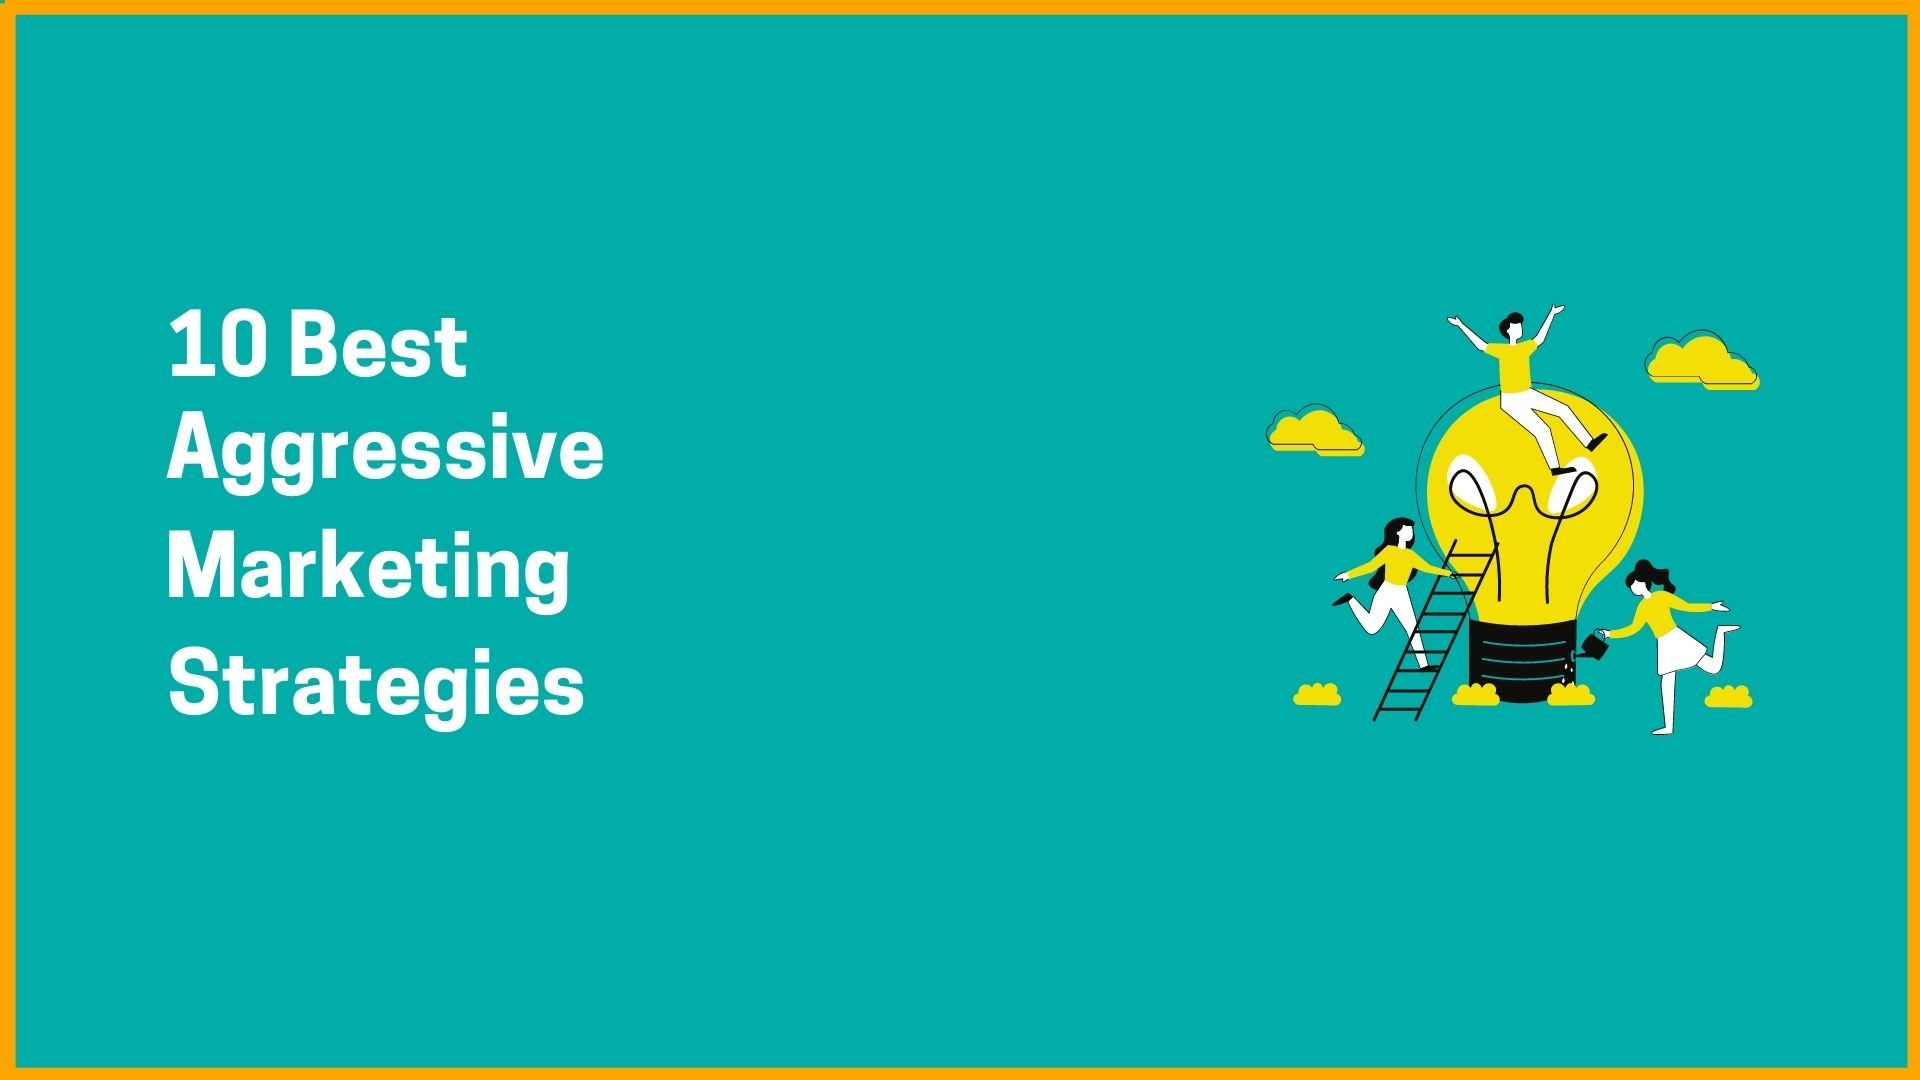 10 Best Aggressive Marketing Strategies